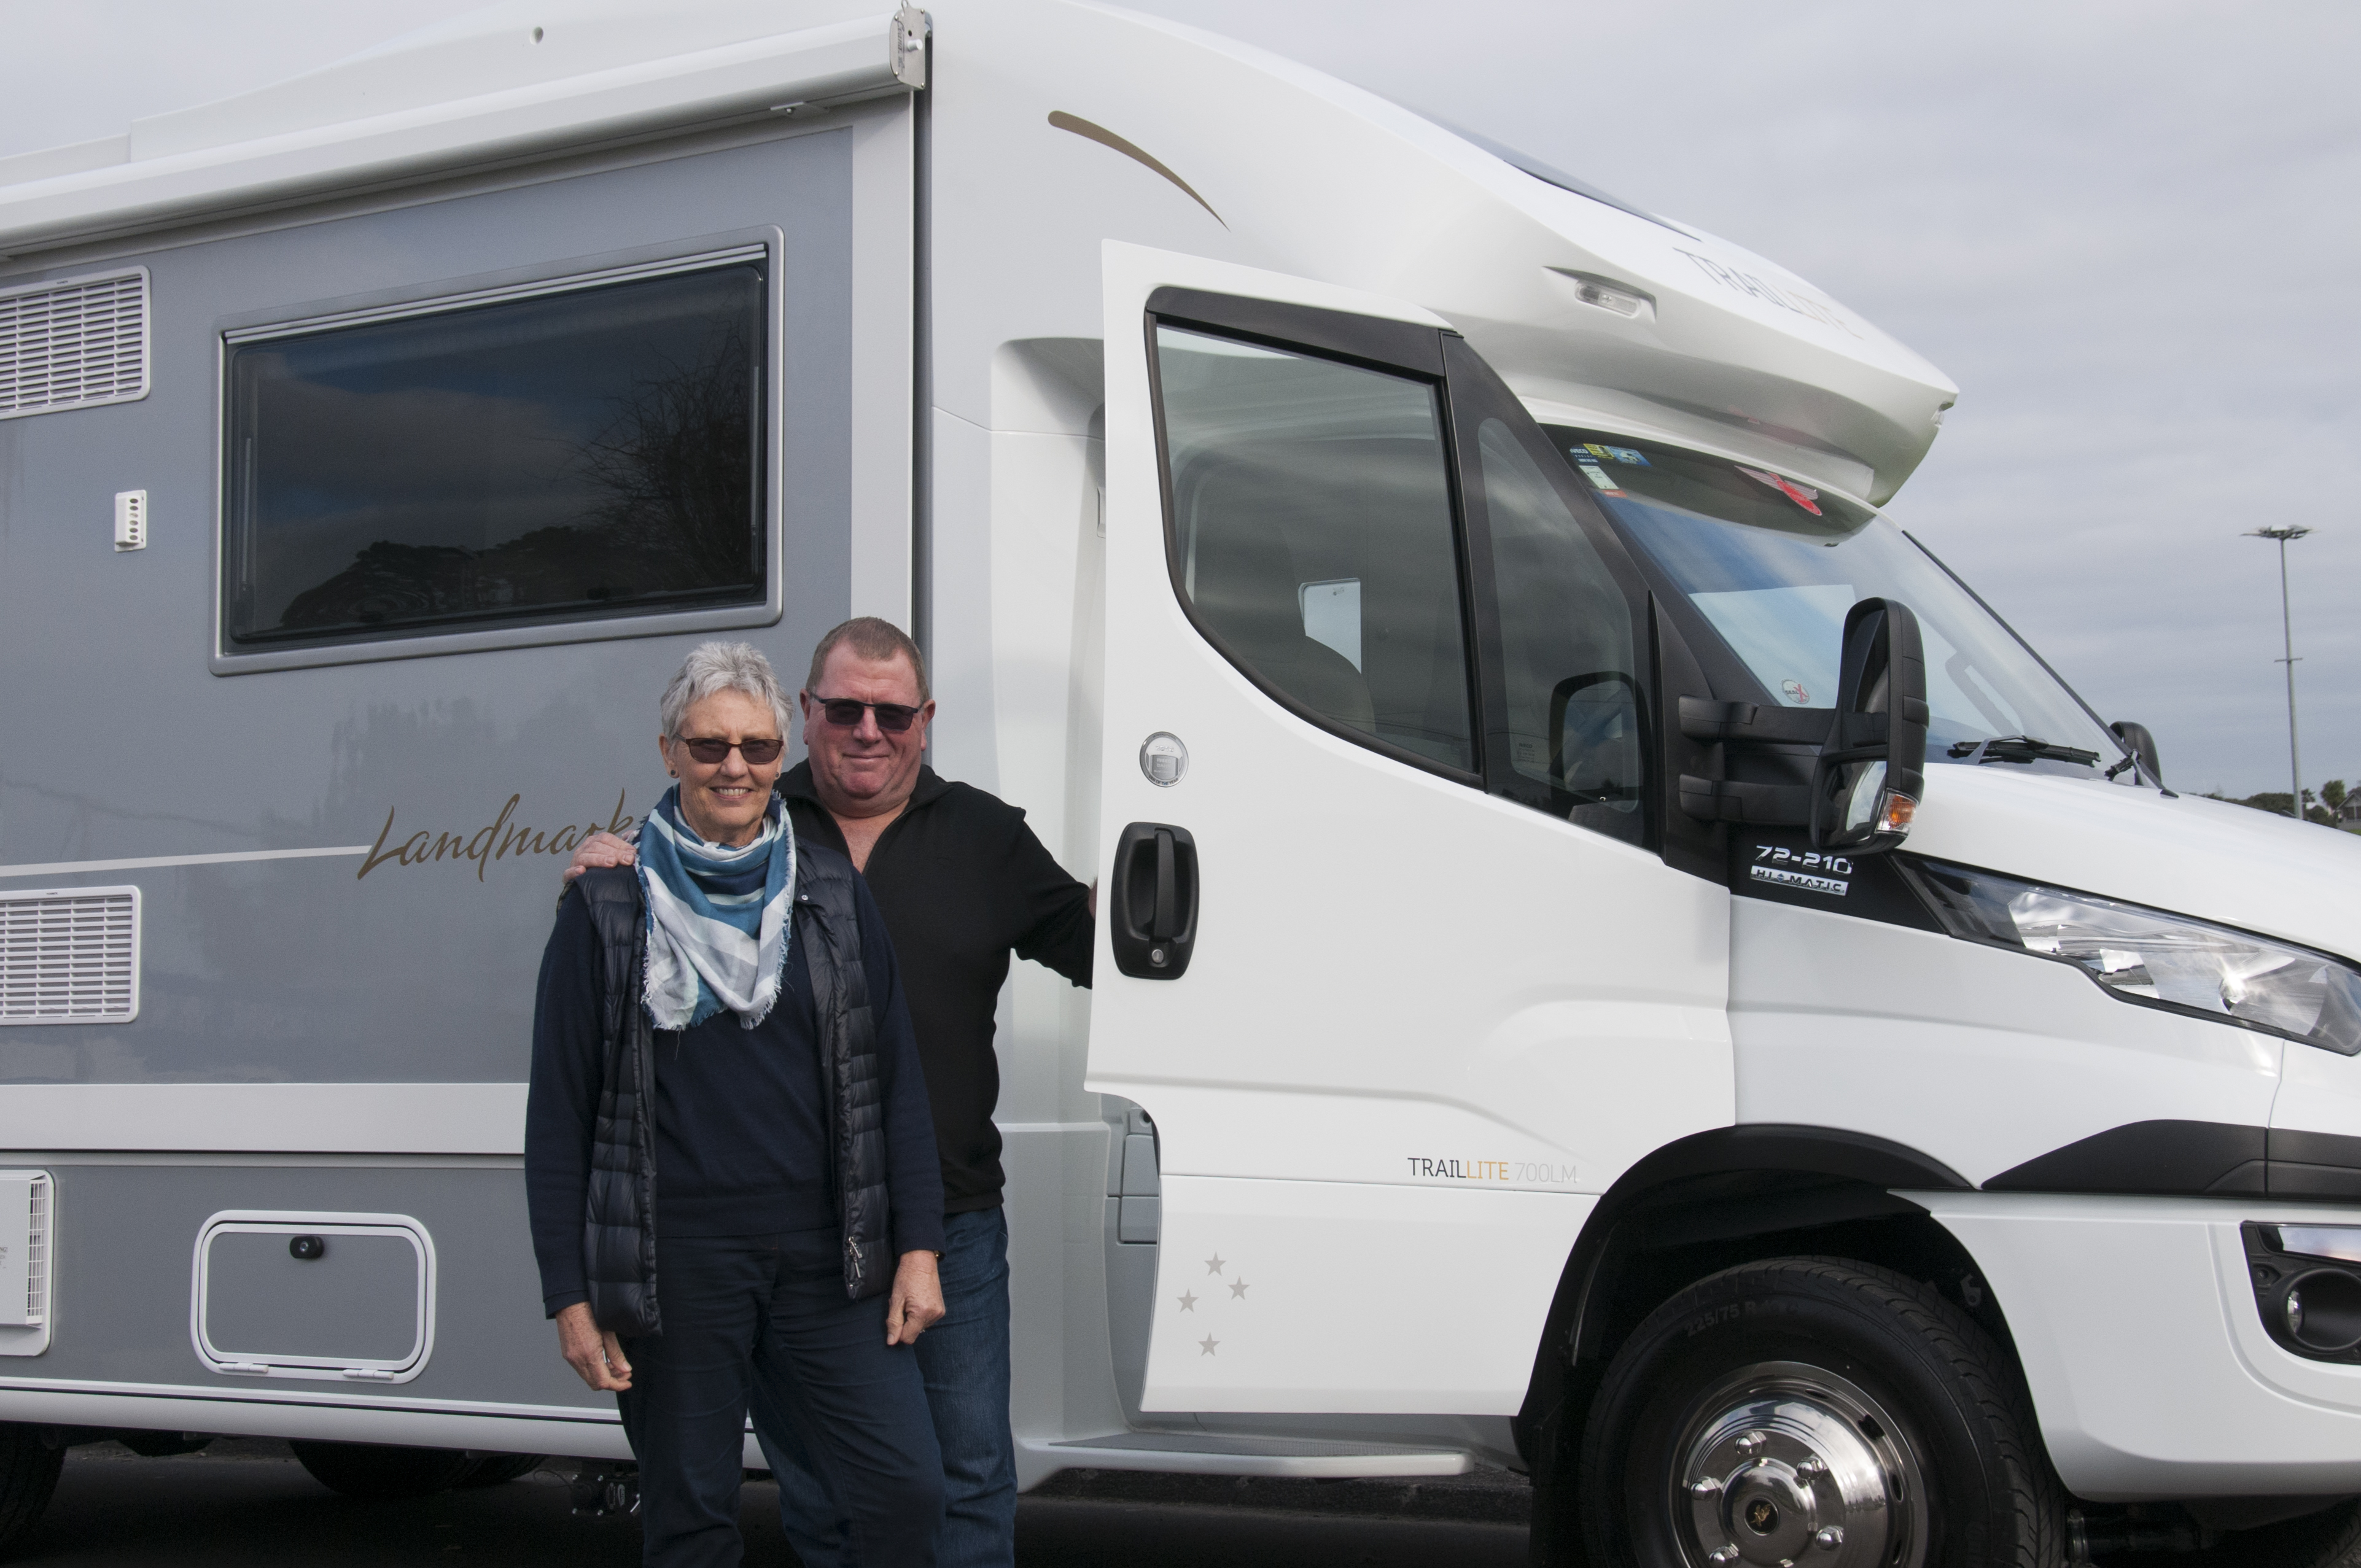 Beth and Peter are looking forward to exploring New Zealand in their state-of-the-art custom-built, Traillite motorhome